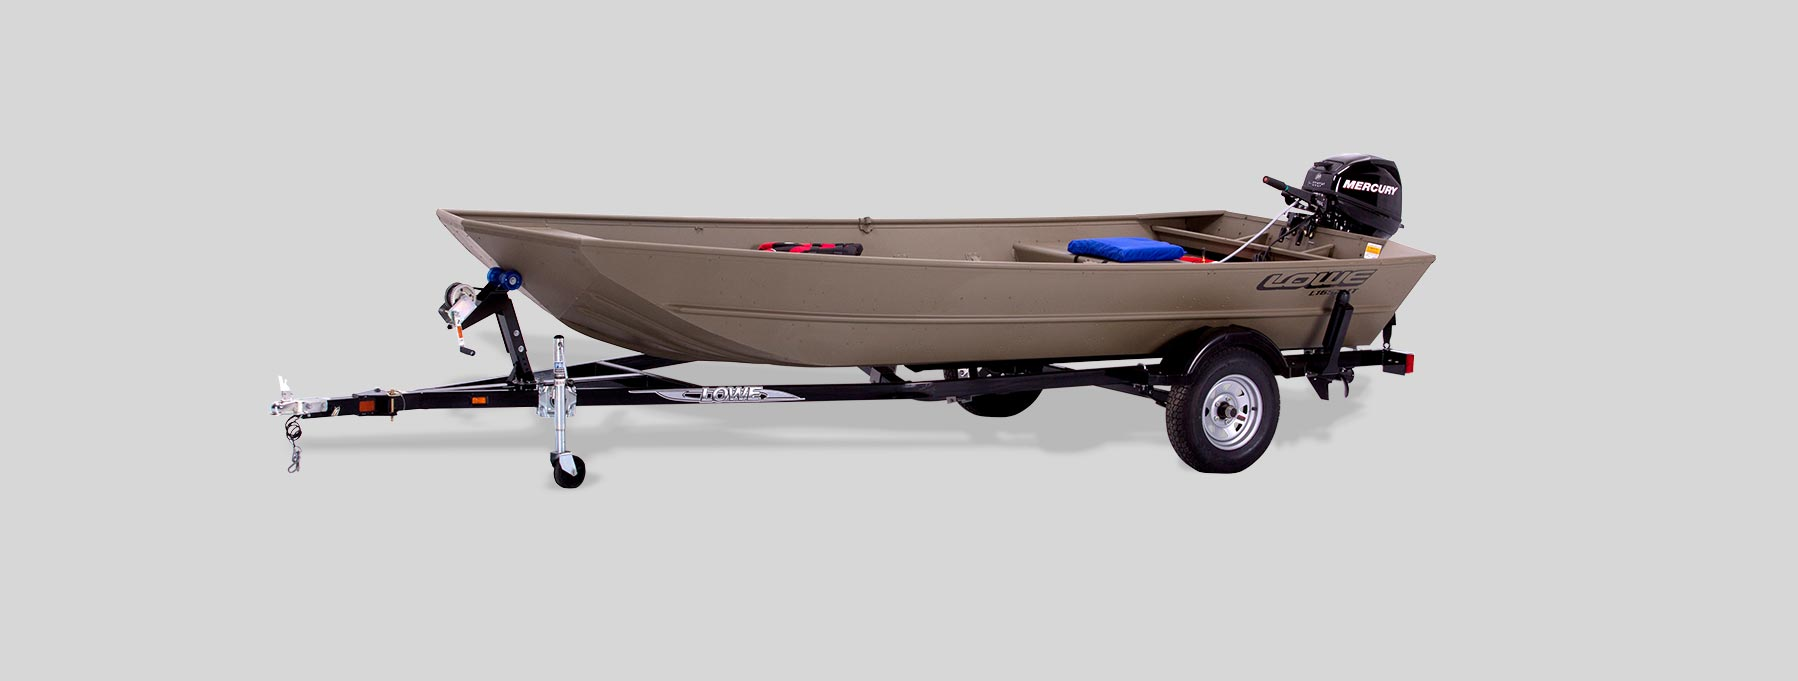 2018 L1652mt Jon Fishing Hunting And Duck Hunting Boats